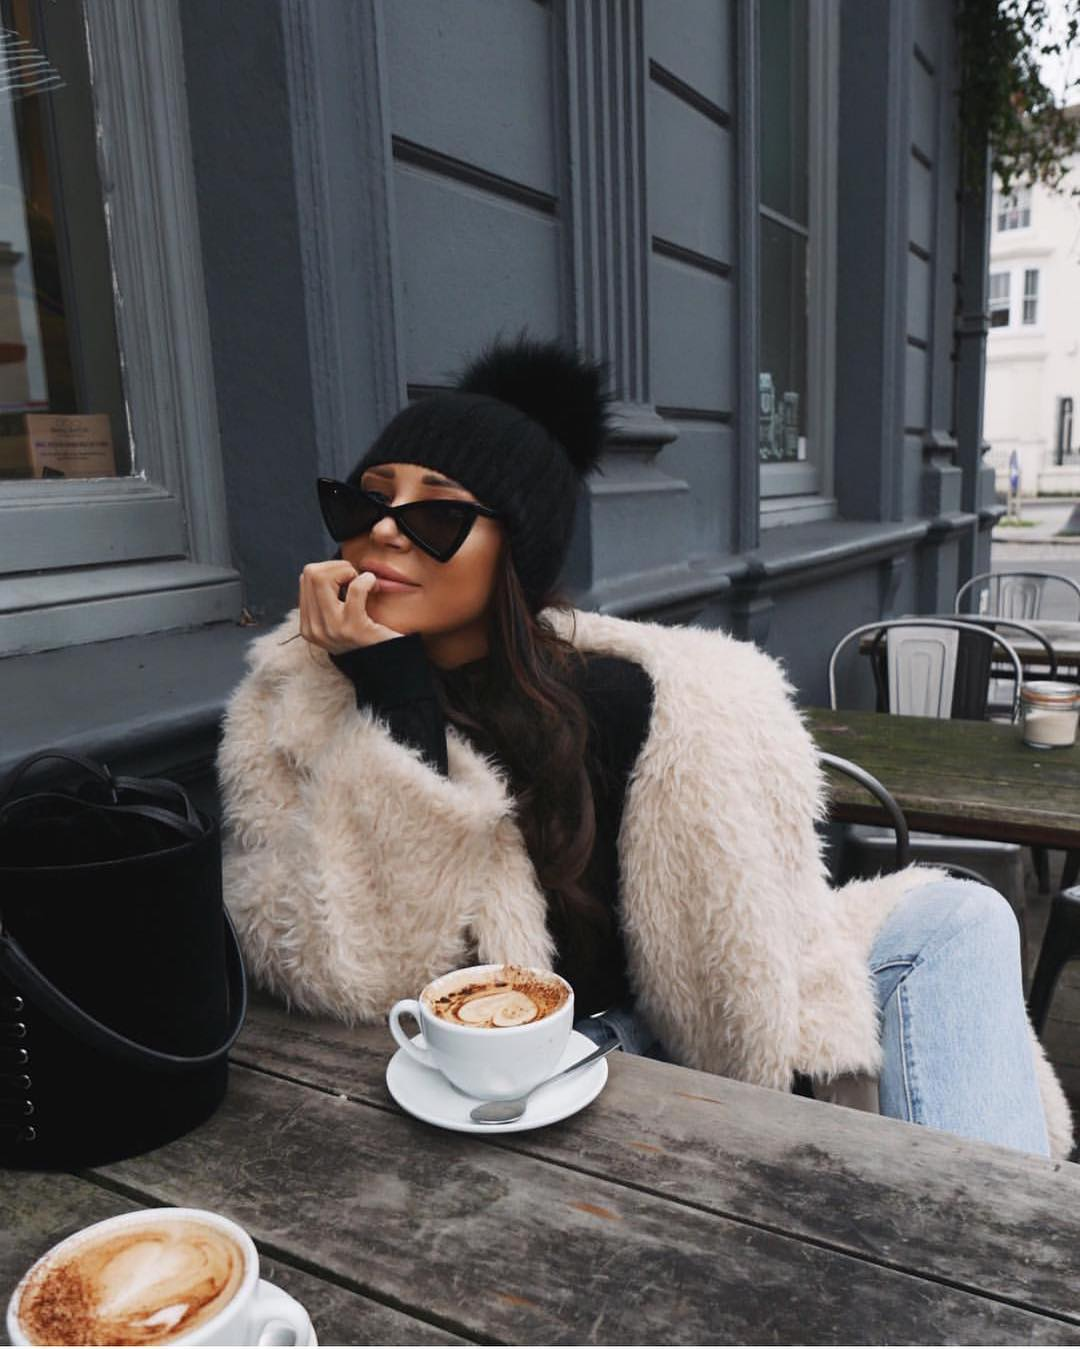 Vintage Triangle Sunglasses With Black Beanie And Furry Jacket 2019